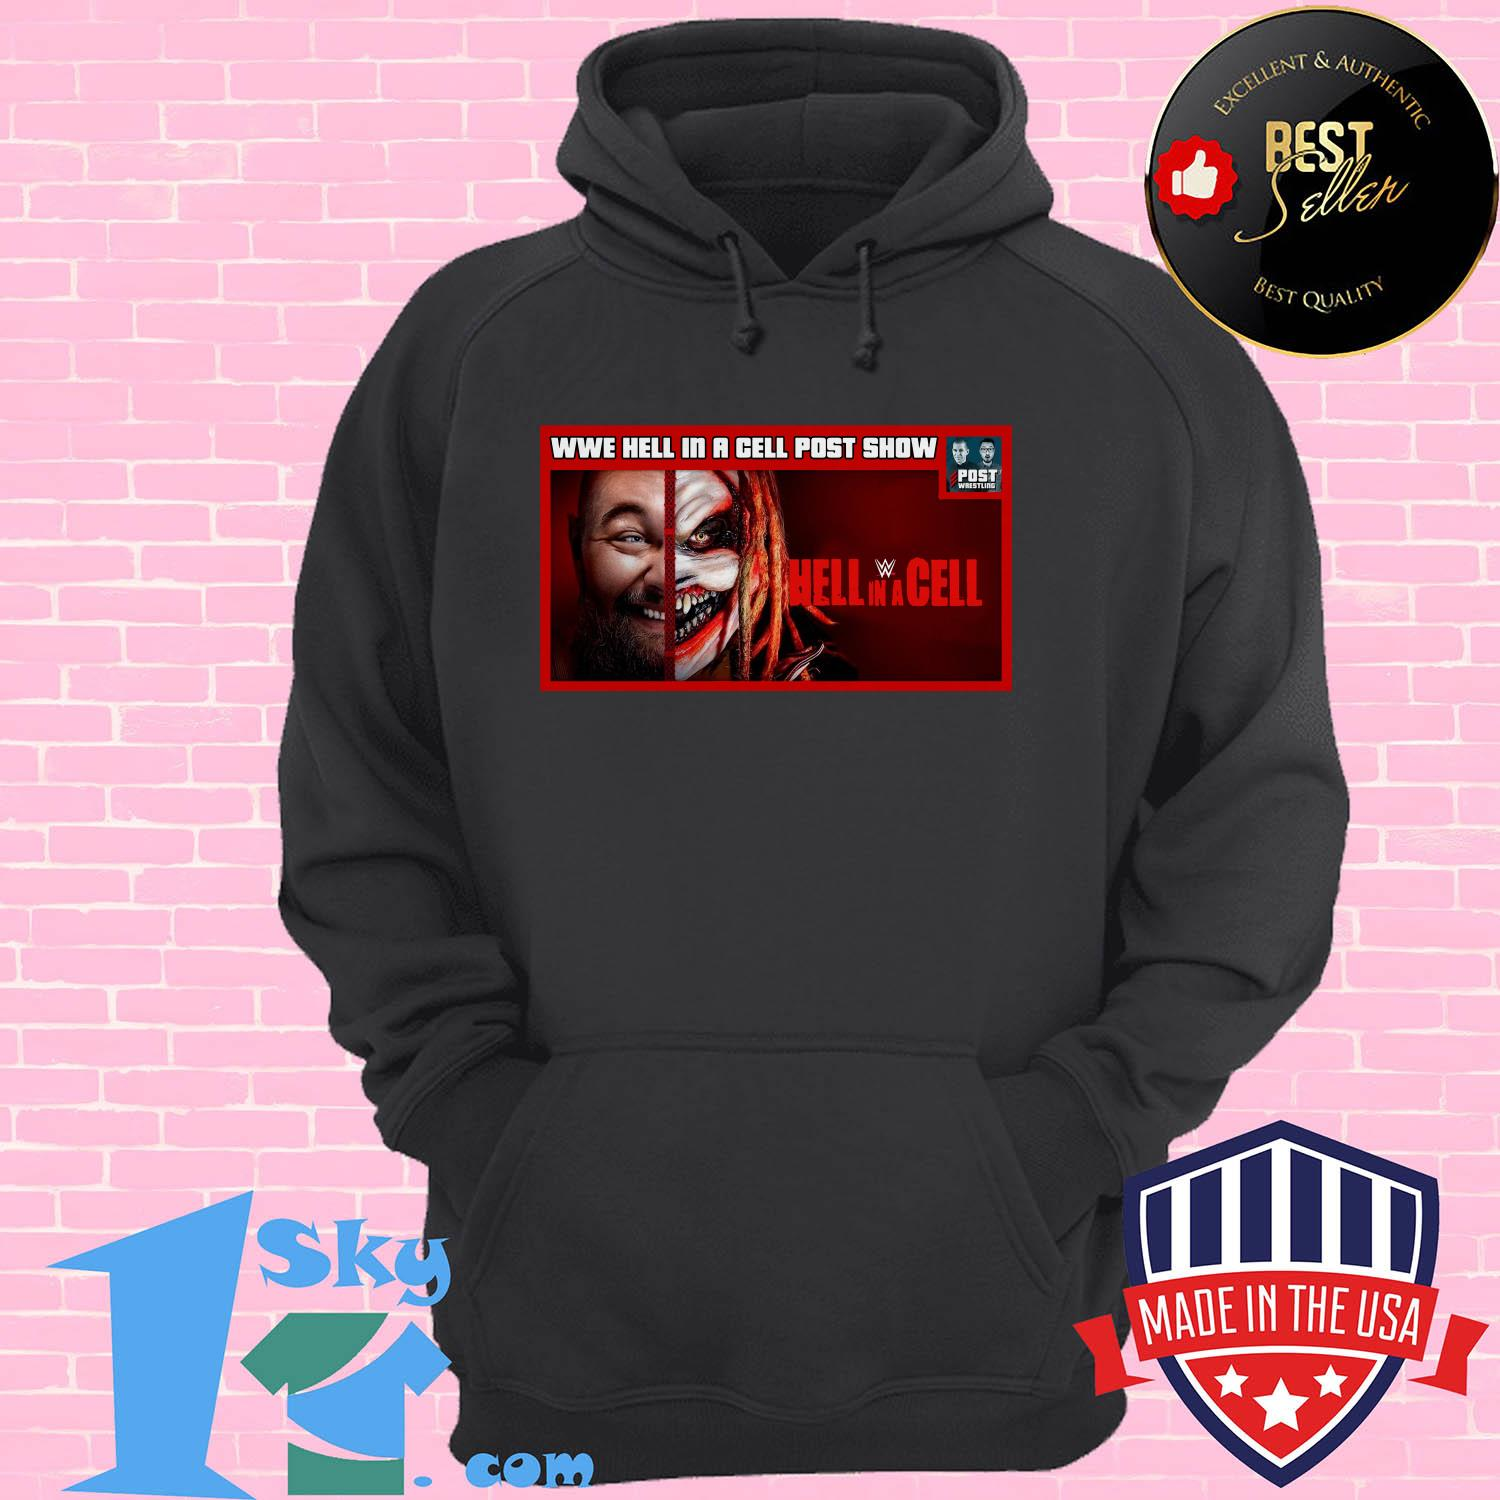 wwe hell in a cell post show hell in a cell hoodie 1 - Wwe Hell In A Cell Post Show Hell In A Cell Shirt